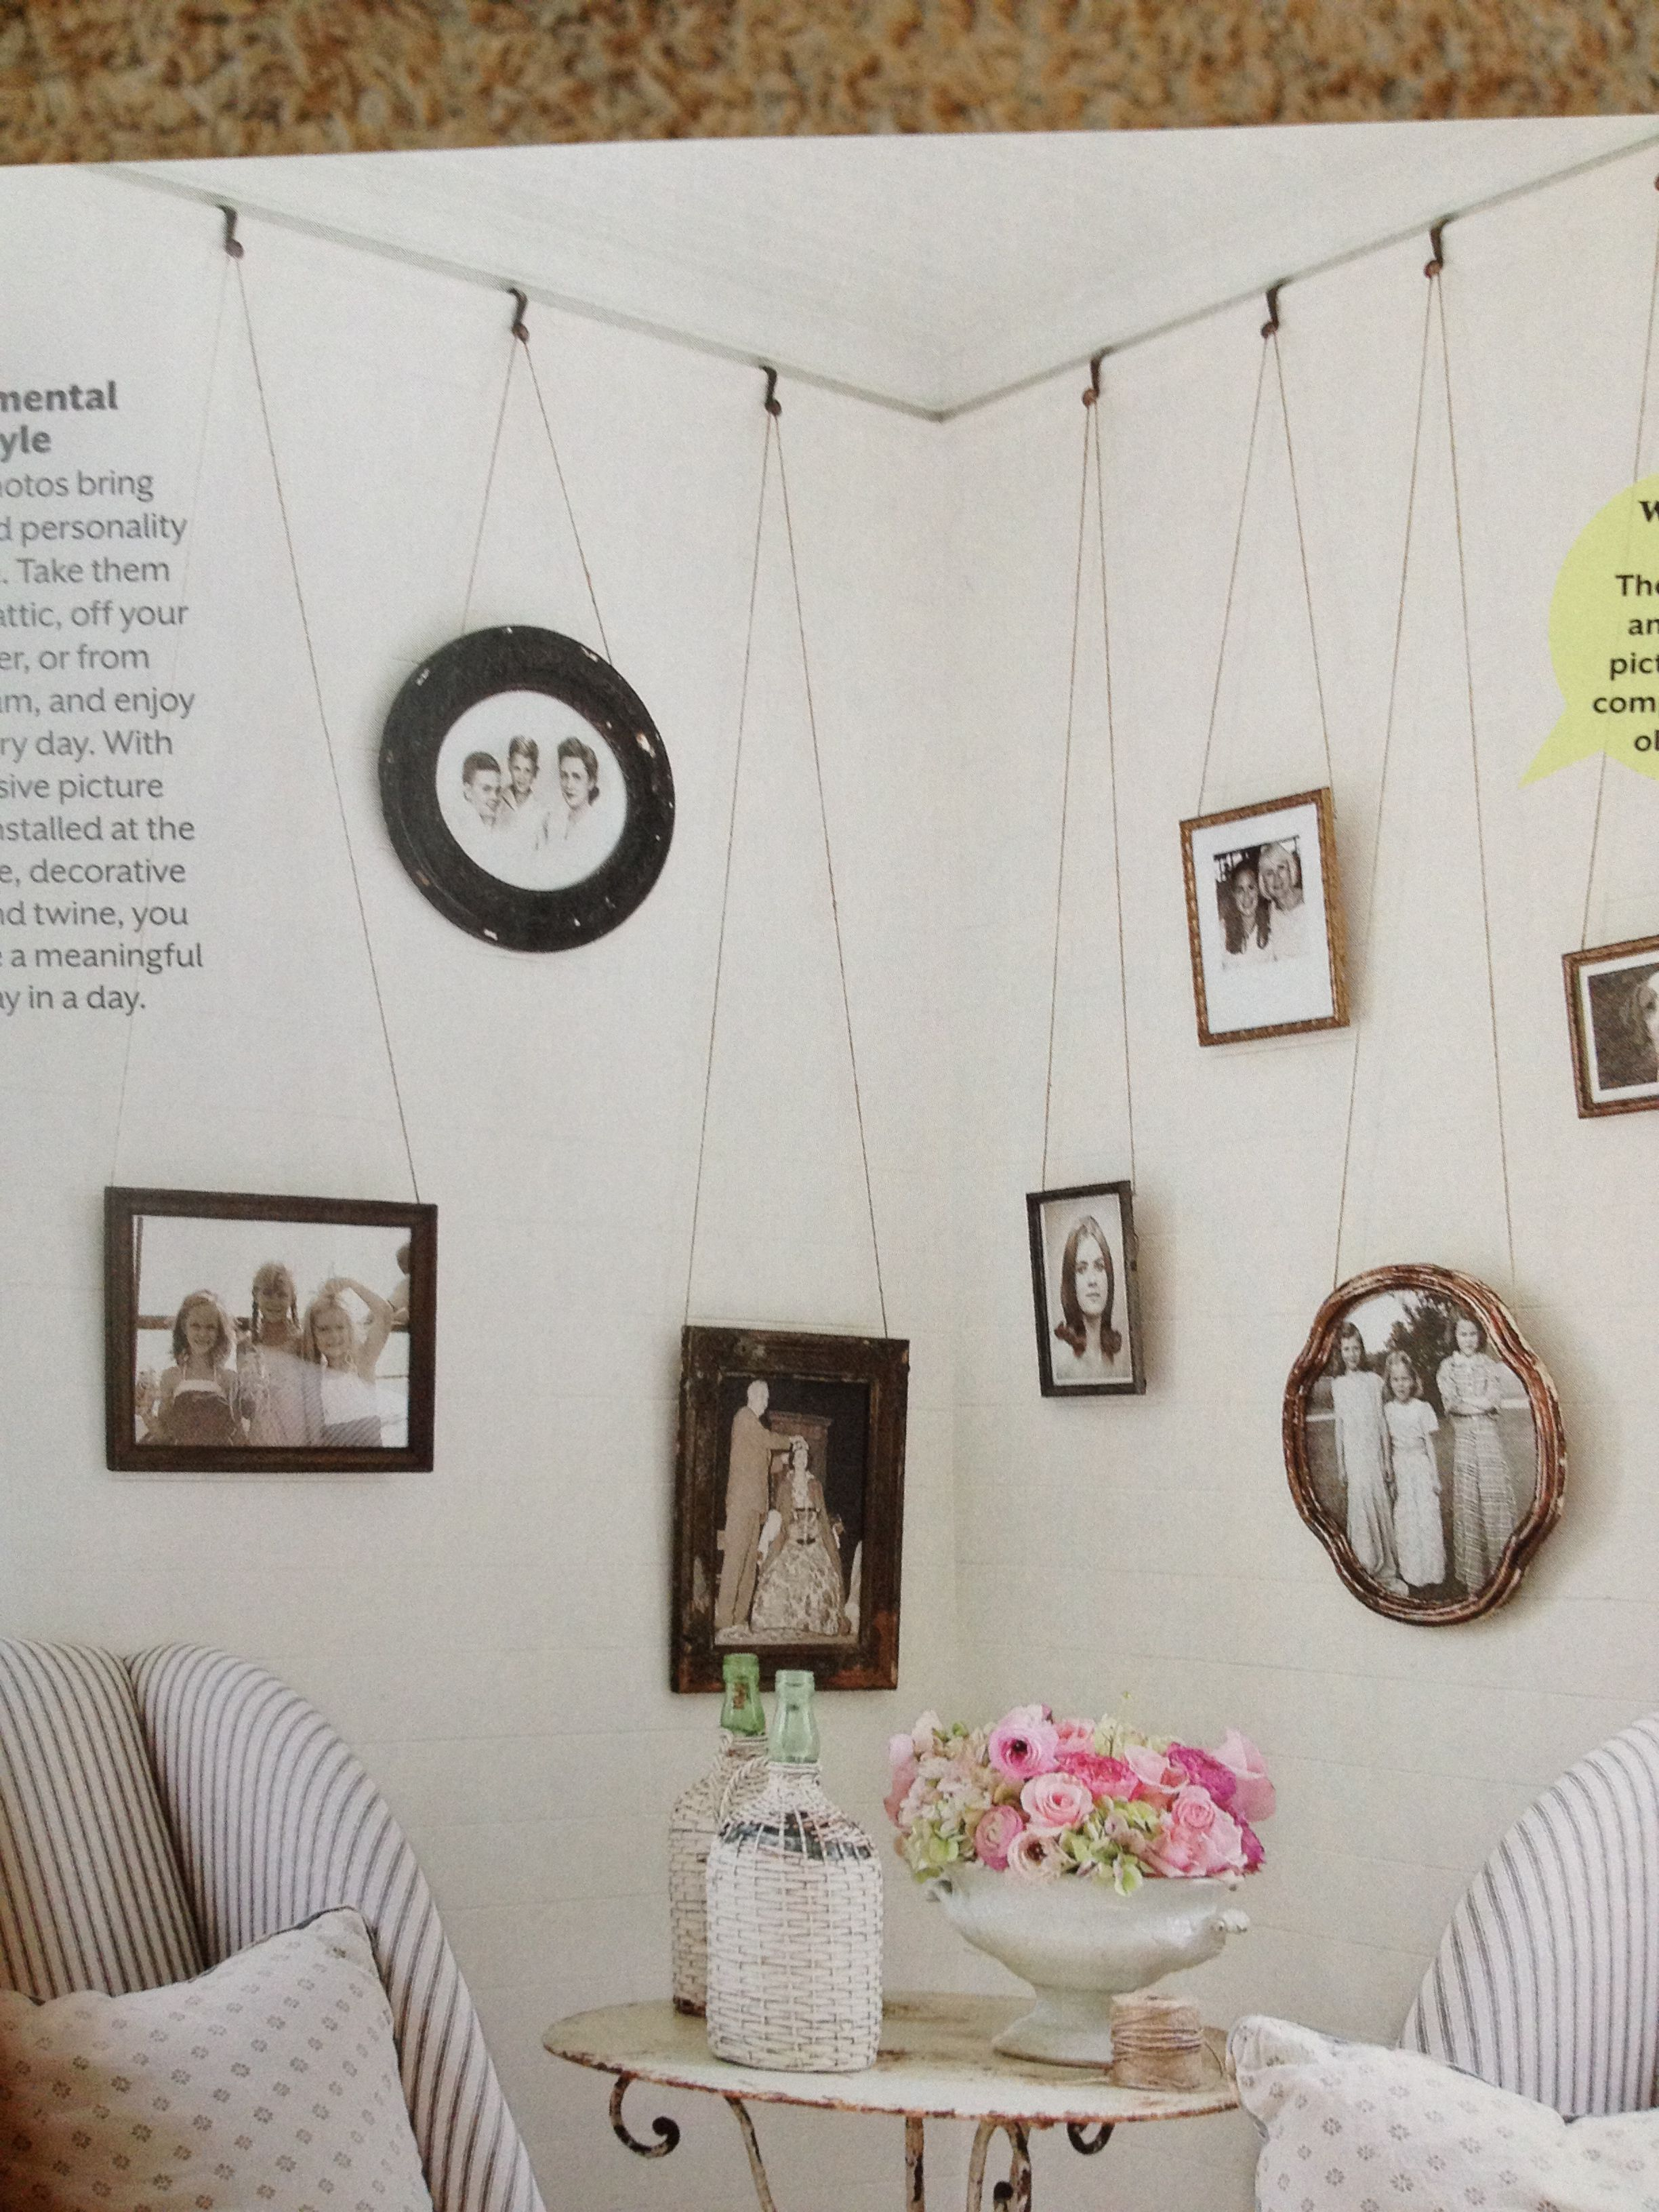 With Inexpensive Picture Molding Installed At The Ceiling Line Decorative Hooks And Twine You Can Hang Pictures Dekor Bilder Aufhangen Haus Deko